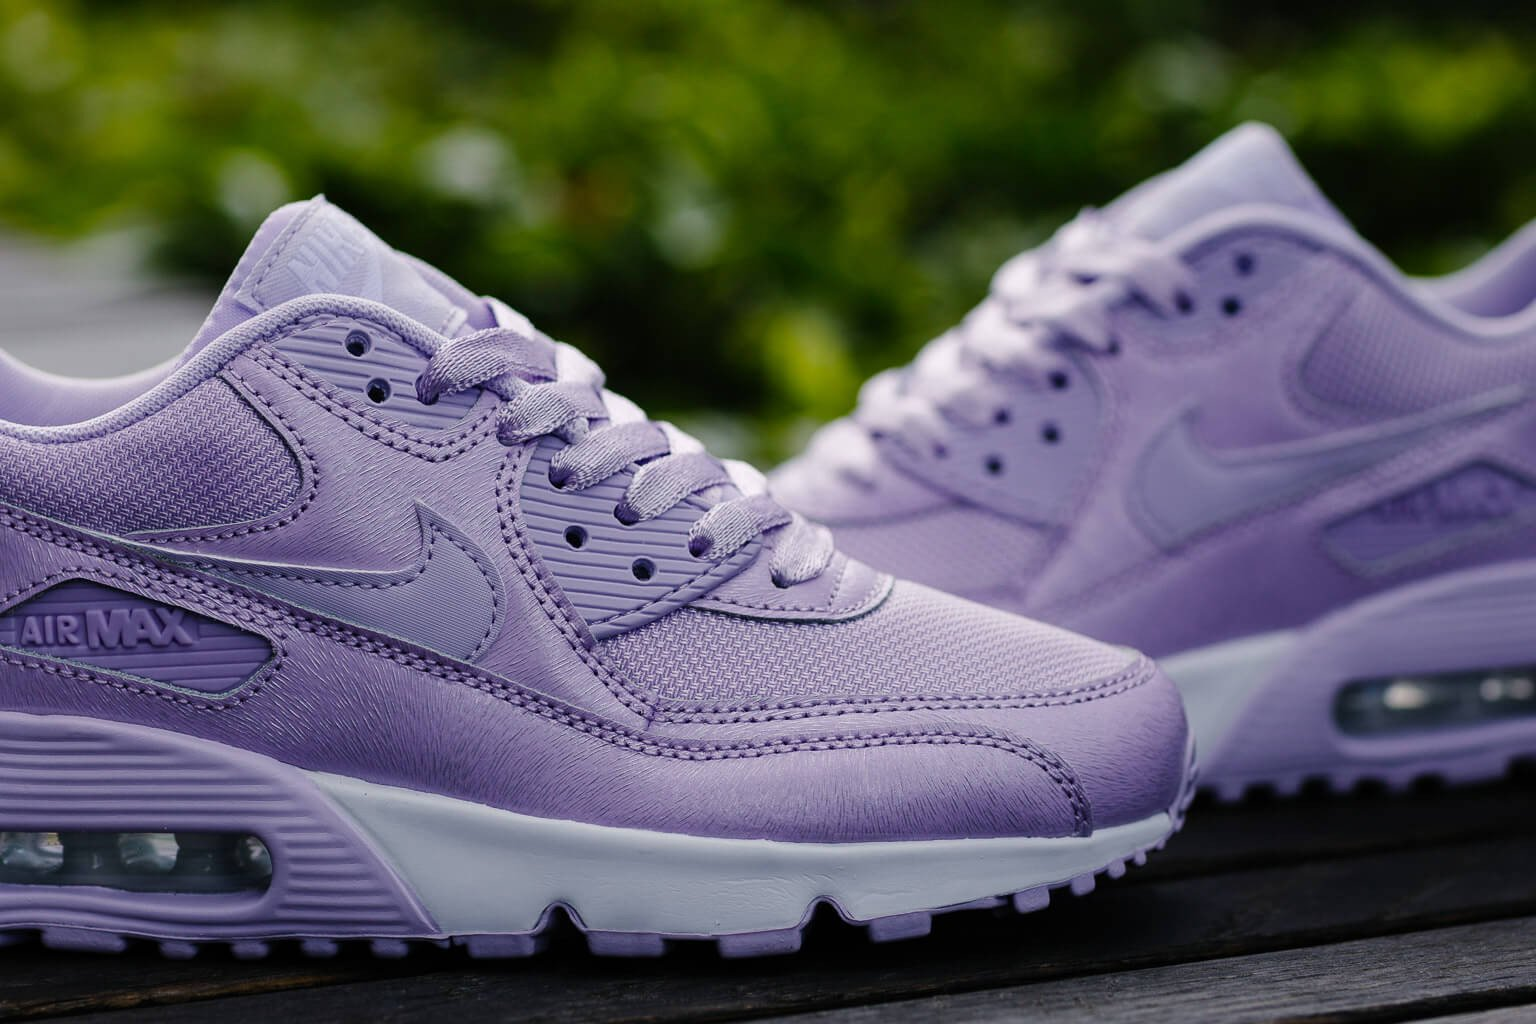 on sale 29f1e 09fd0 nike air max 90 gs violet mist nz